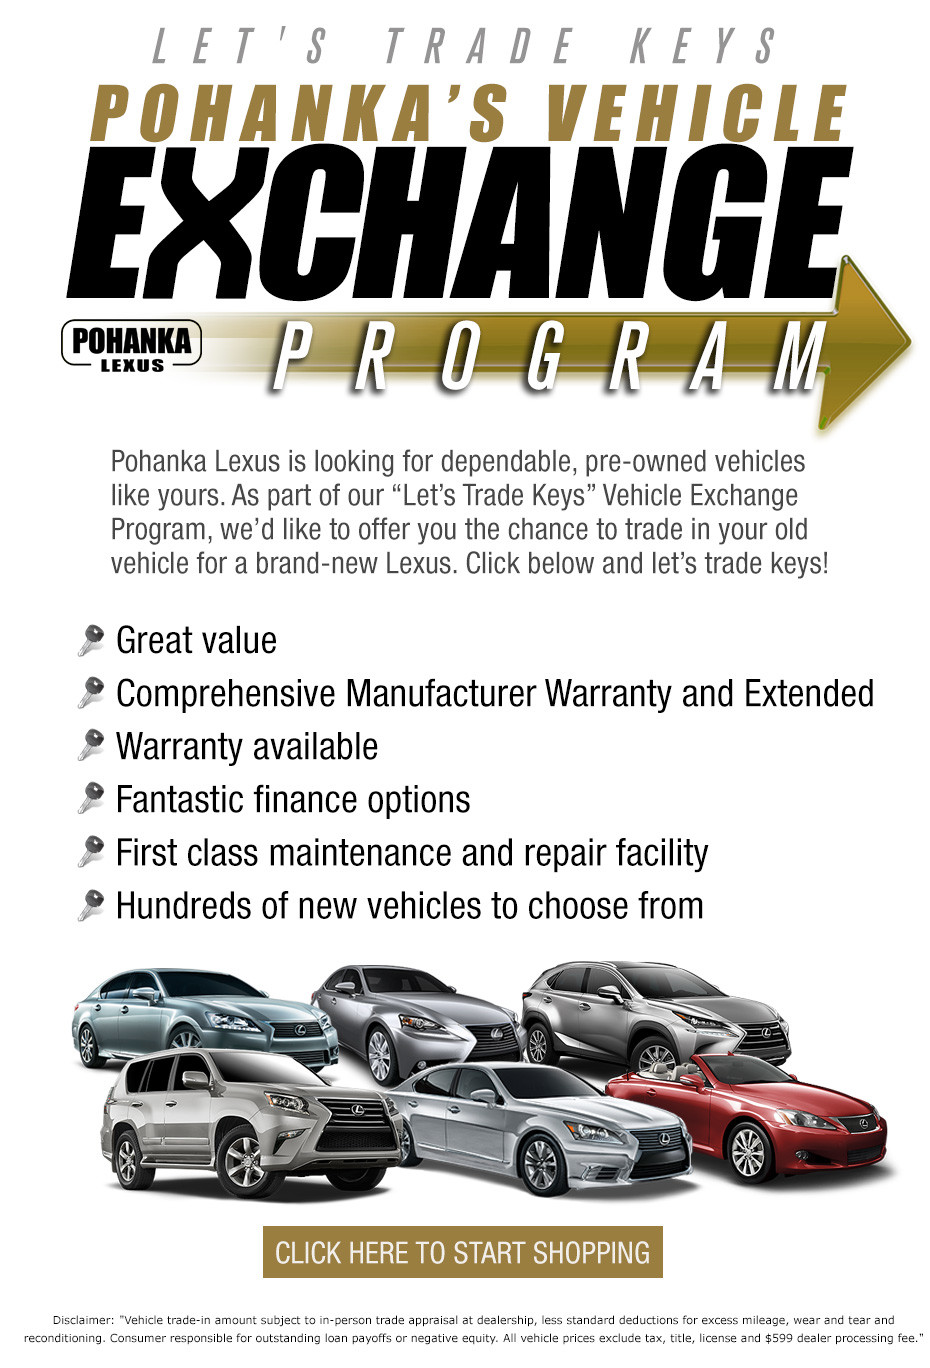 Pohanka Vehicle Exchange Program - Pohanka Lexus